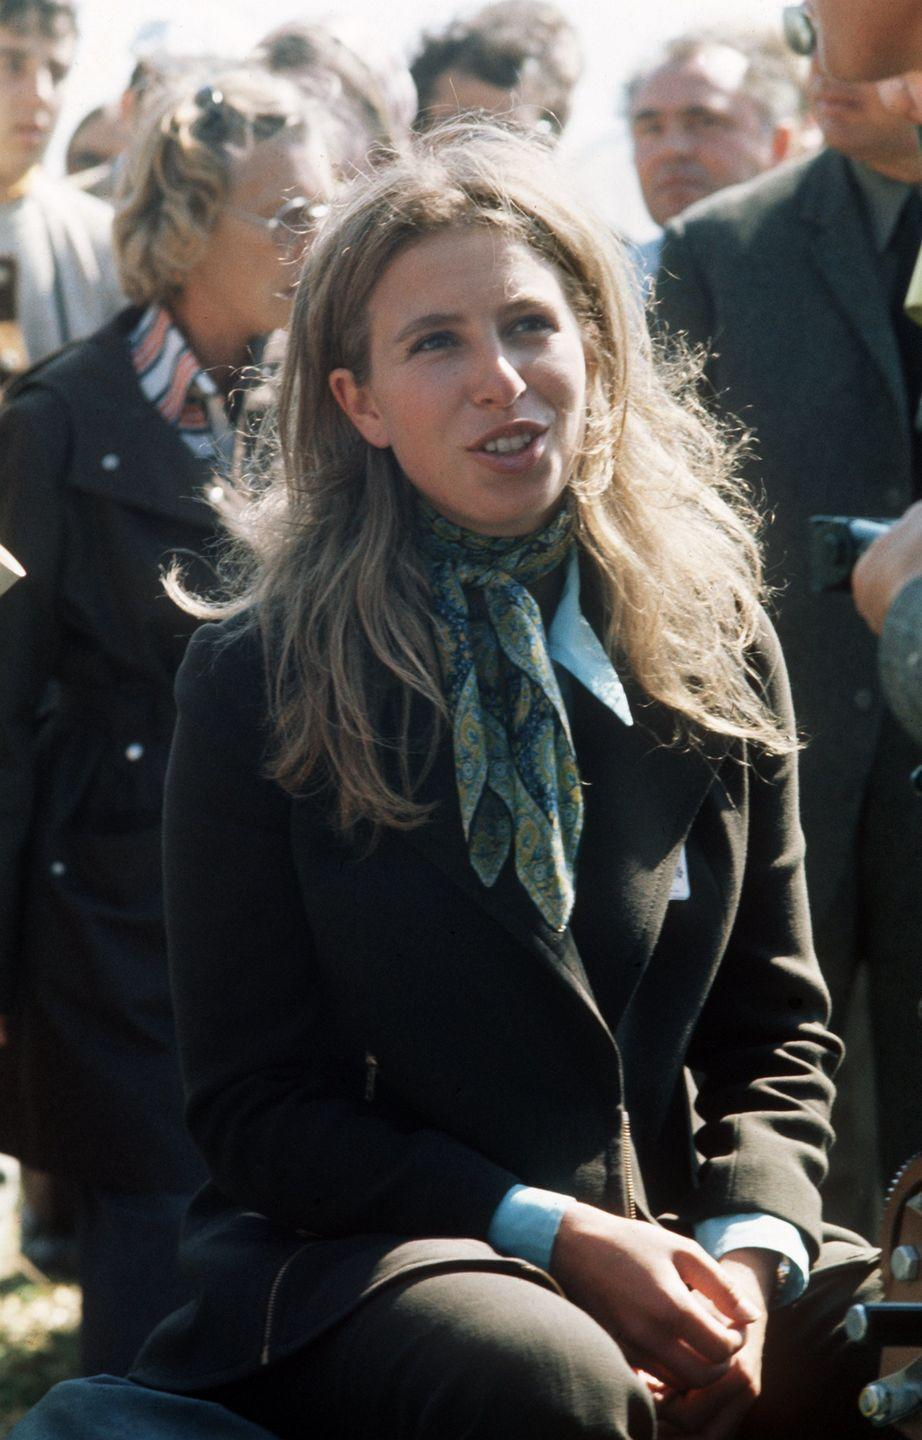 <p>The Princess watches on at the 1972 Olympics in Munich, in which her soon-to-be husband Captain Mark Phillips is competing. She'd go on to compete in the 1976 Olympics.<br></p>